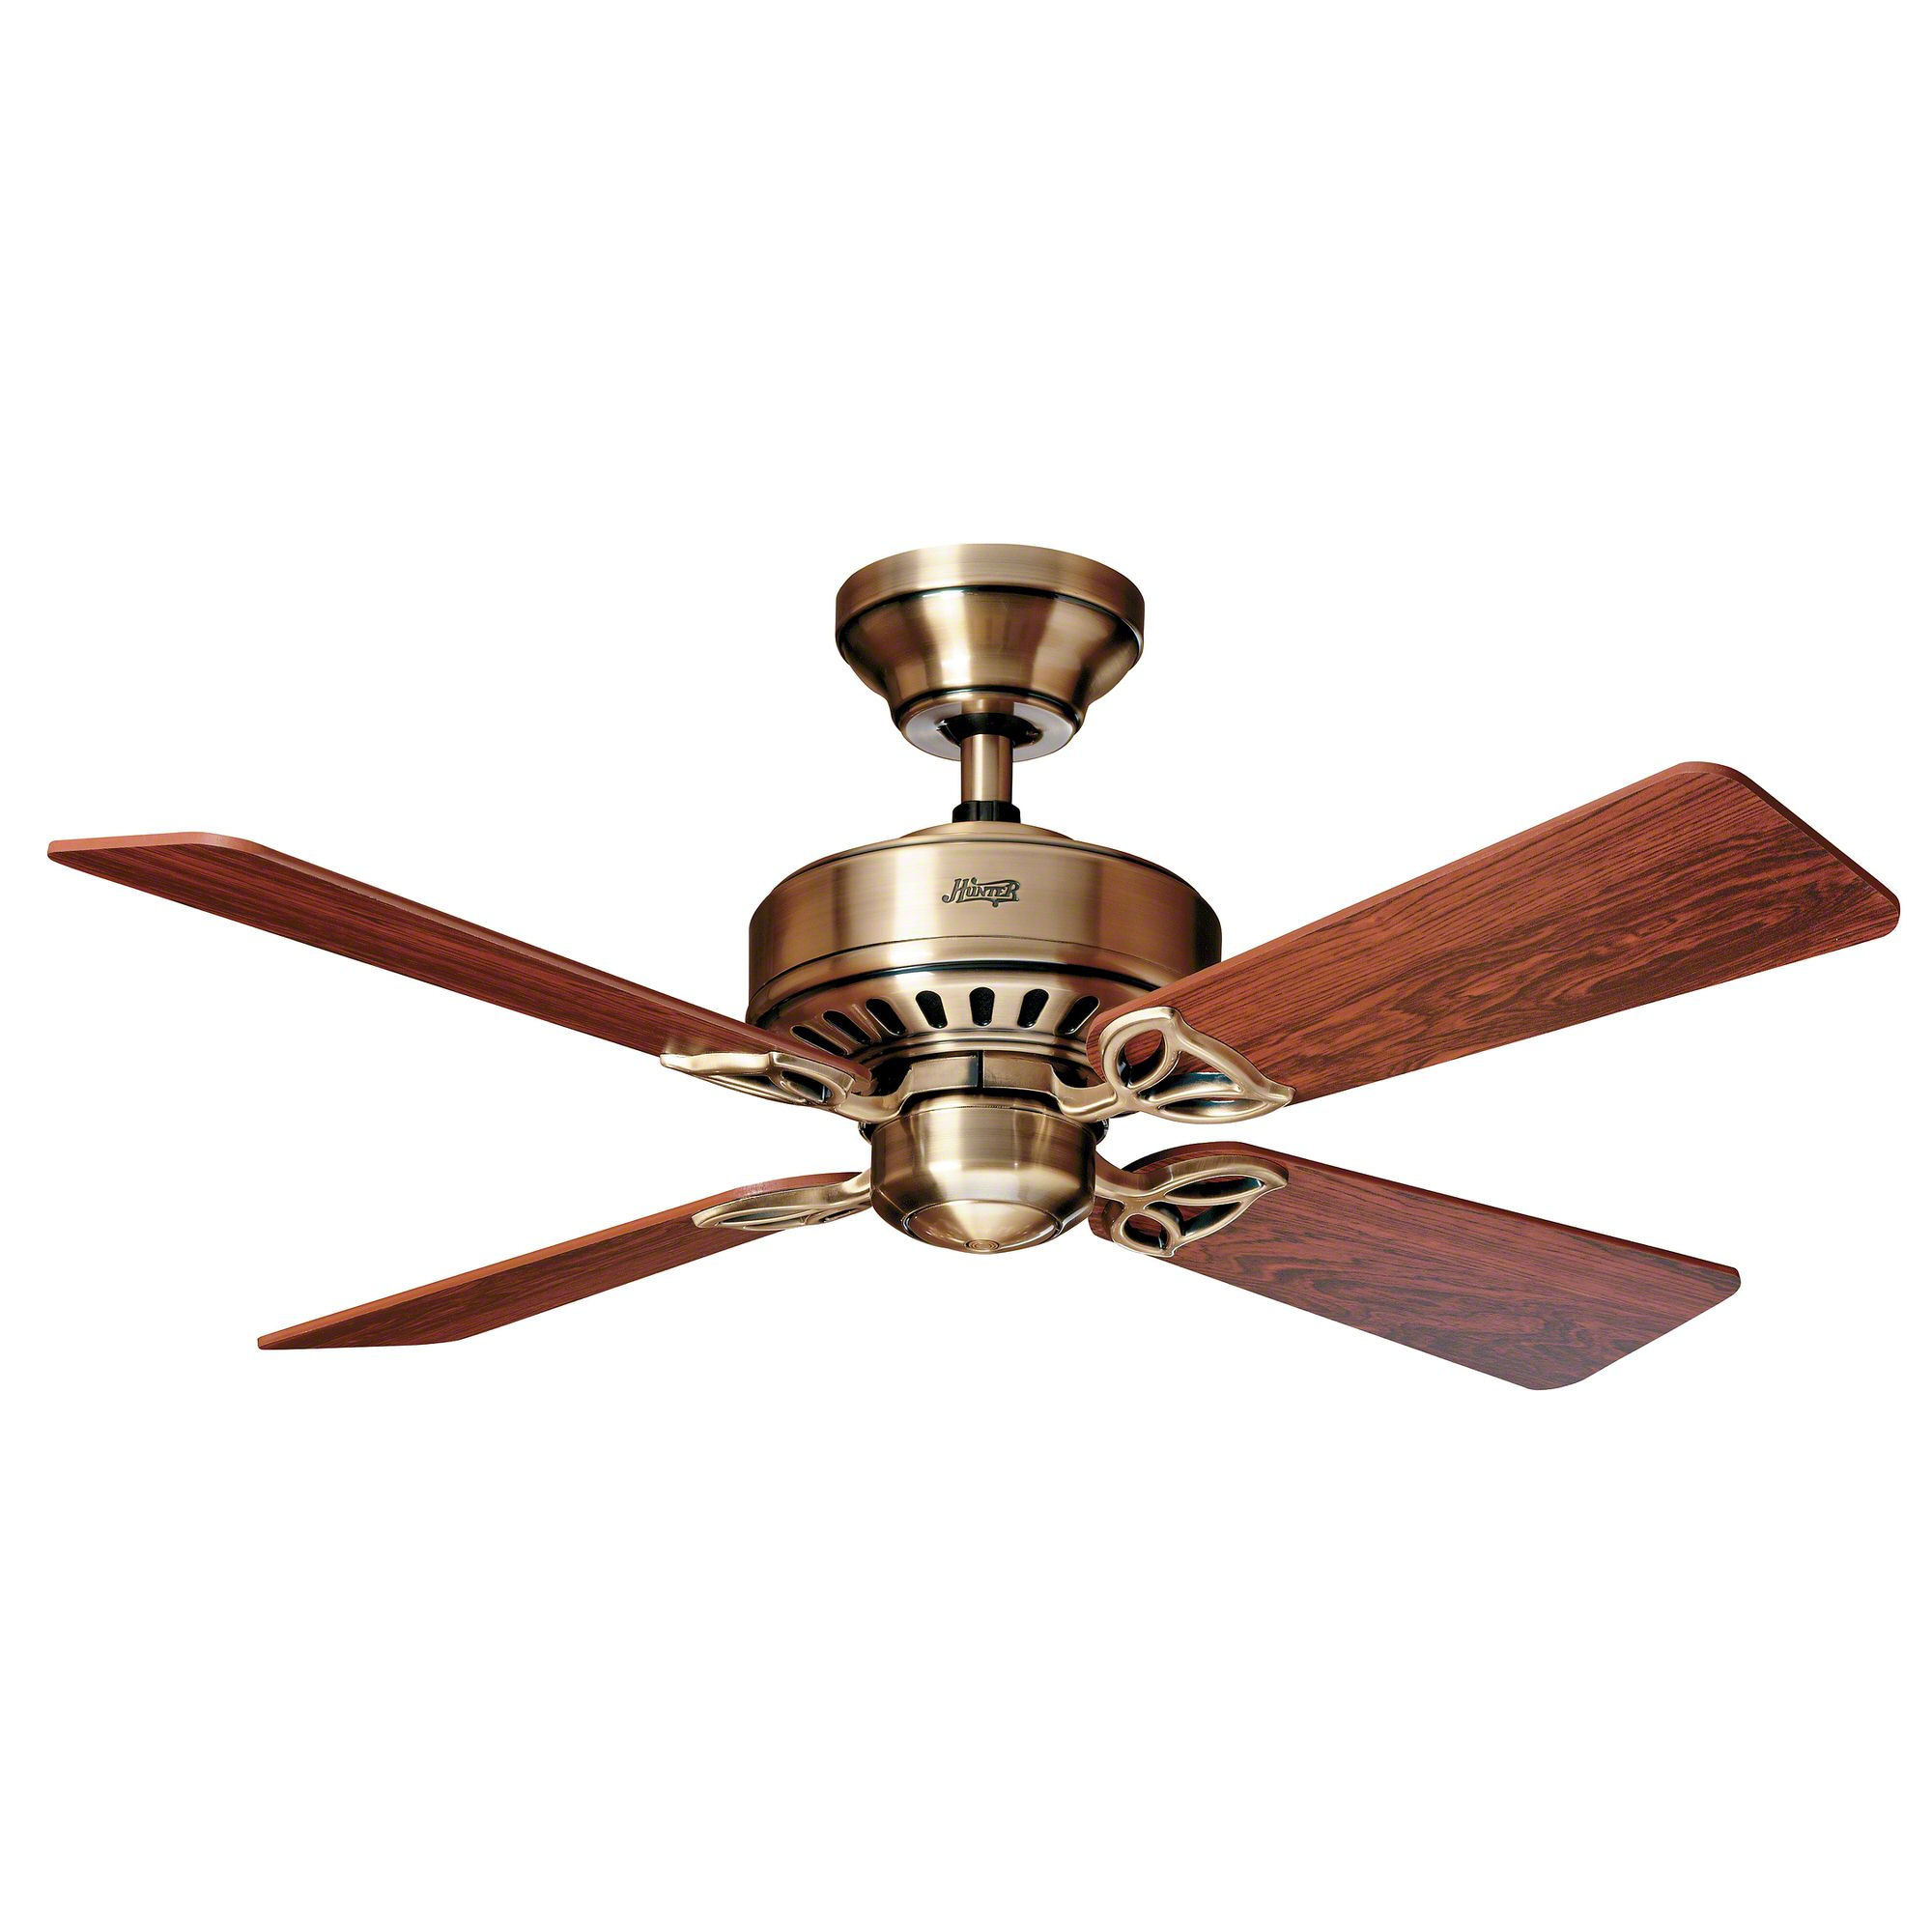 369_Hunter_Ceiling_fan_24174_Bayport_antique_brass